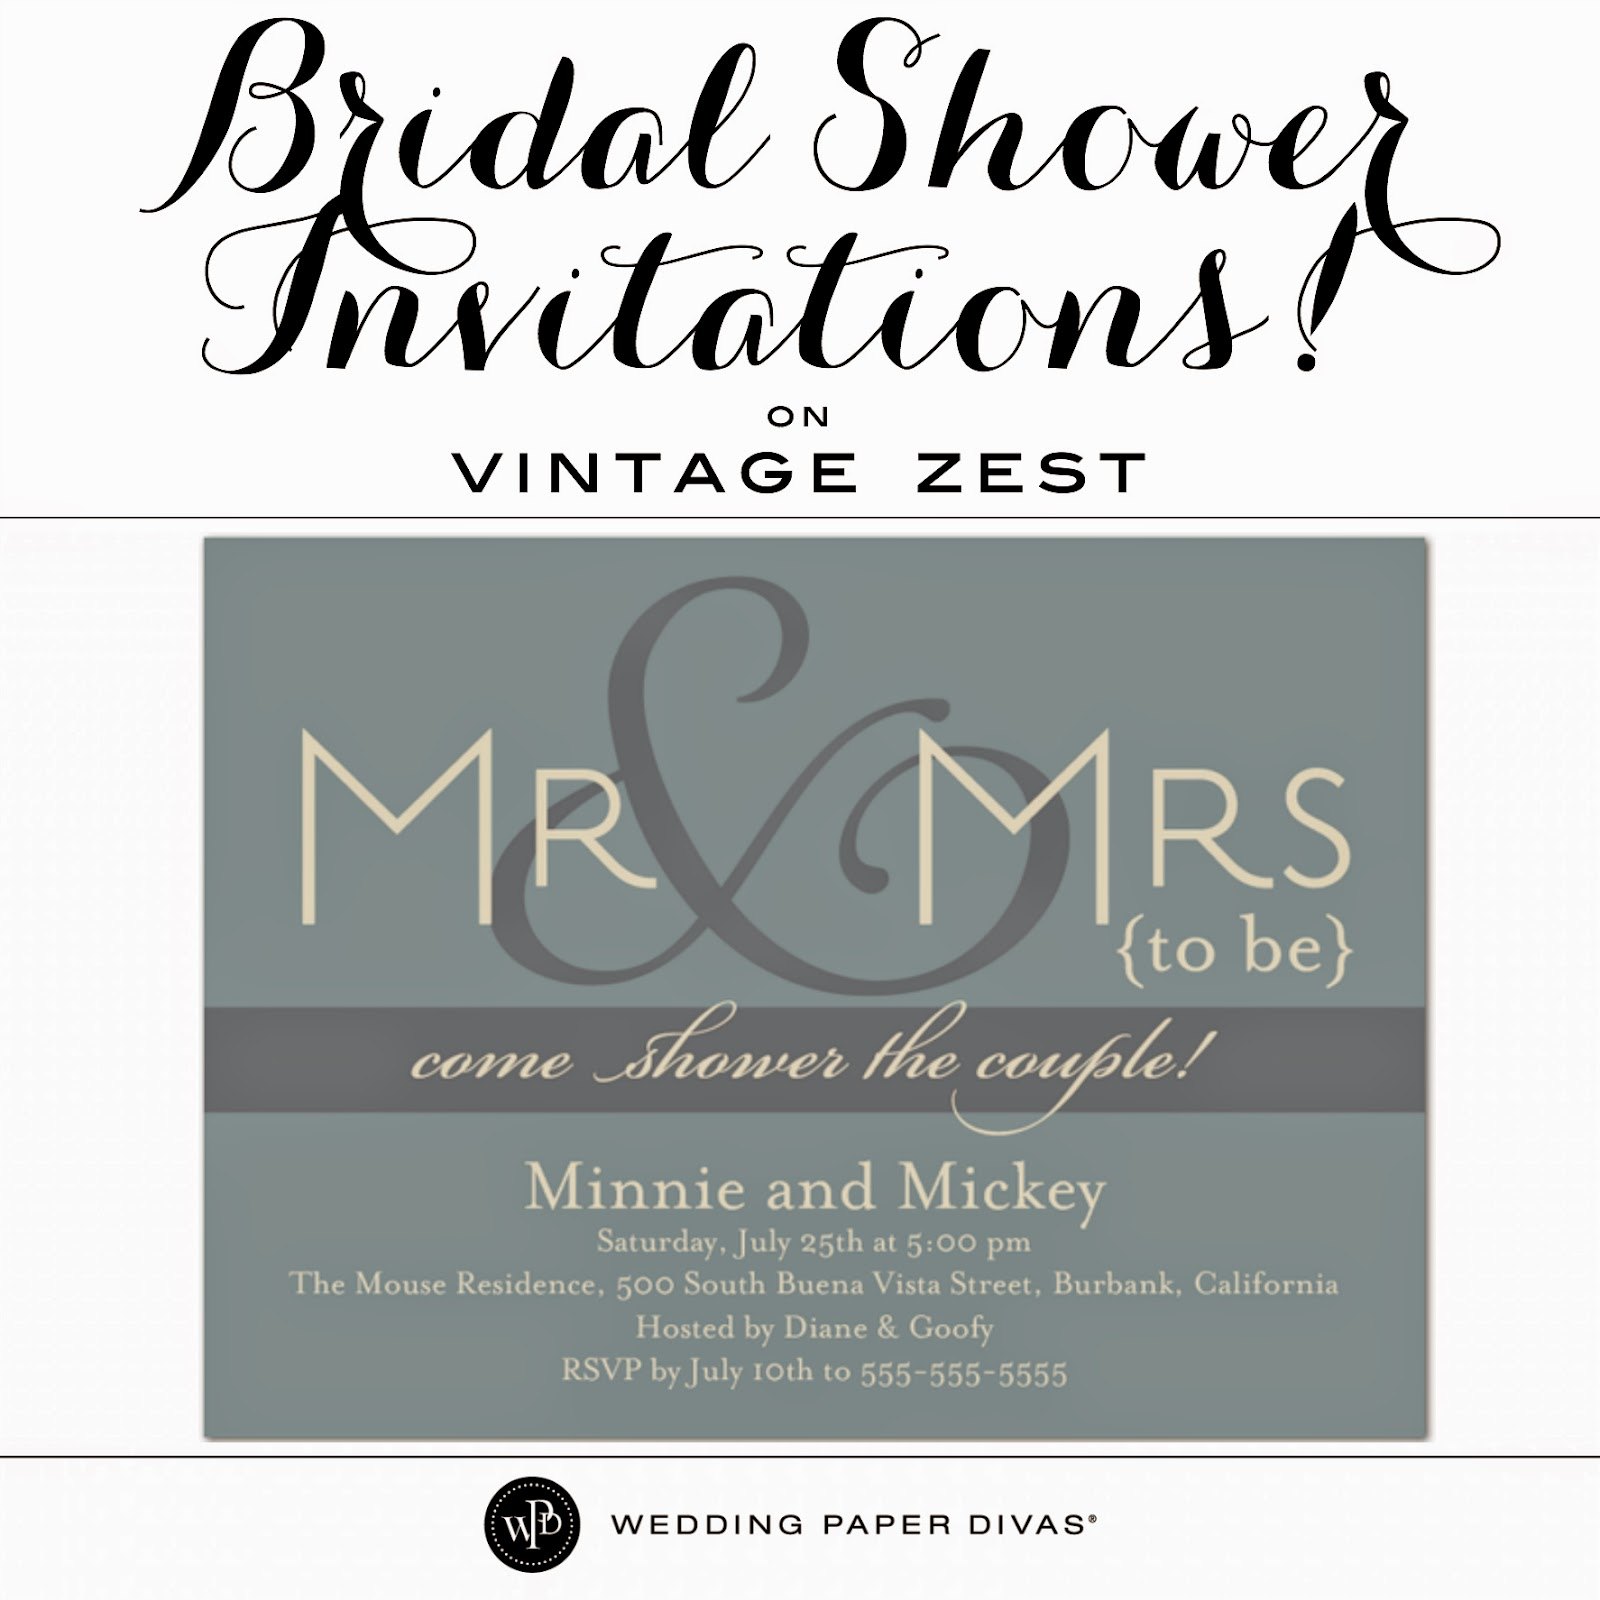 Bridal Shower Invitations On Diane S Vintage Zest Ad Weddingpaperdivas Ic